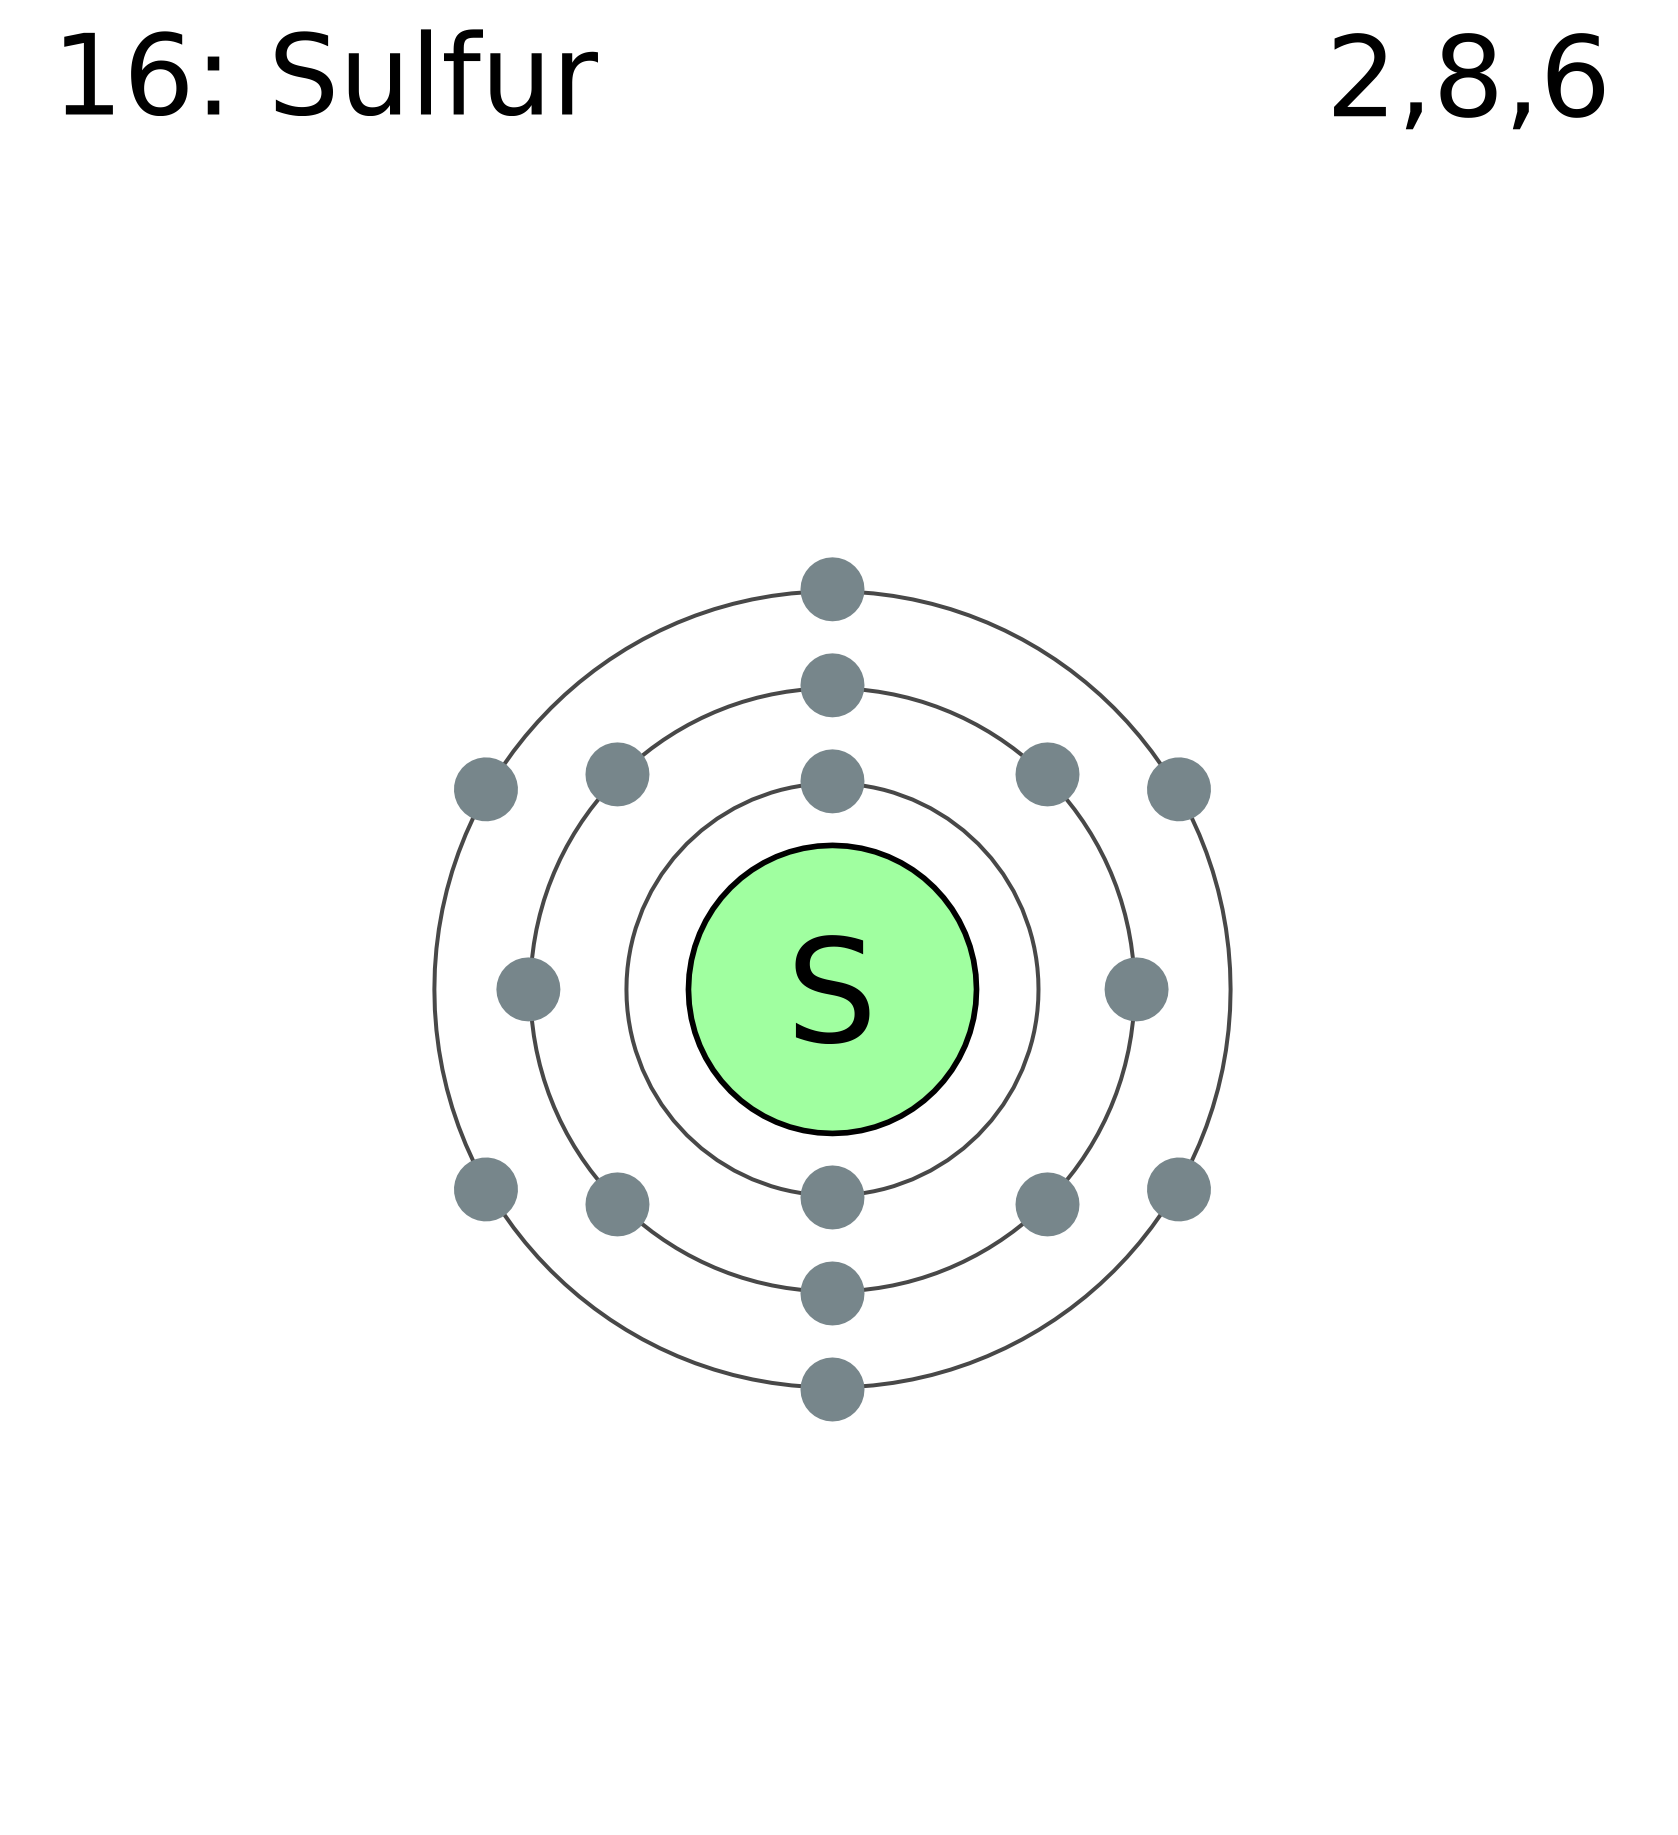 File:Electron shell 016 sulfur.png - Wikimedia Commons